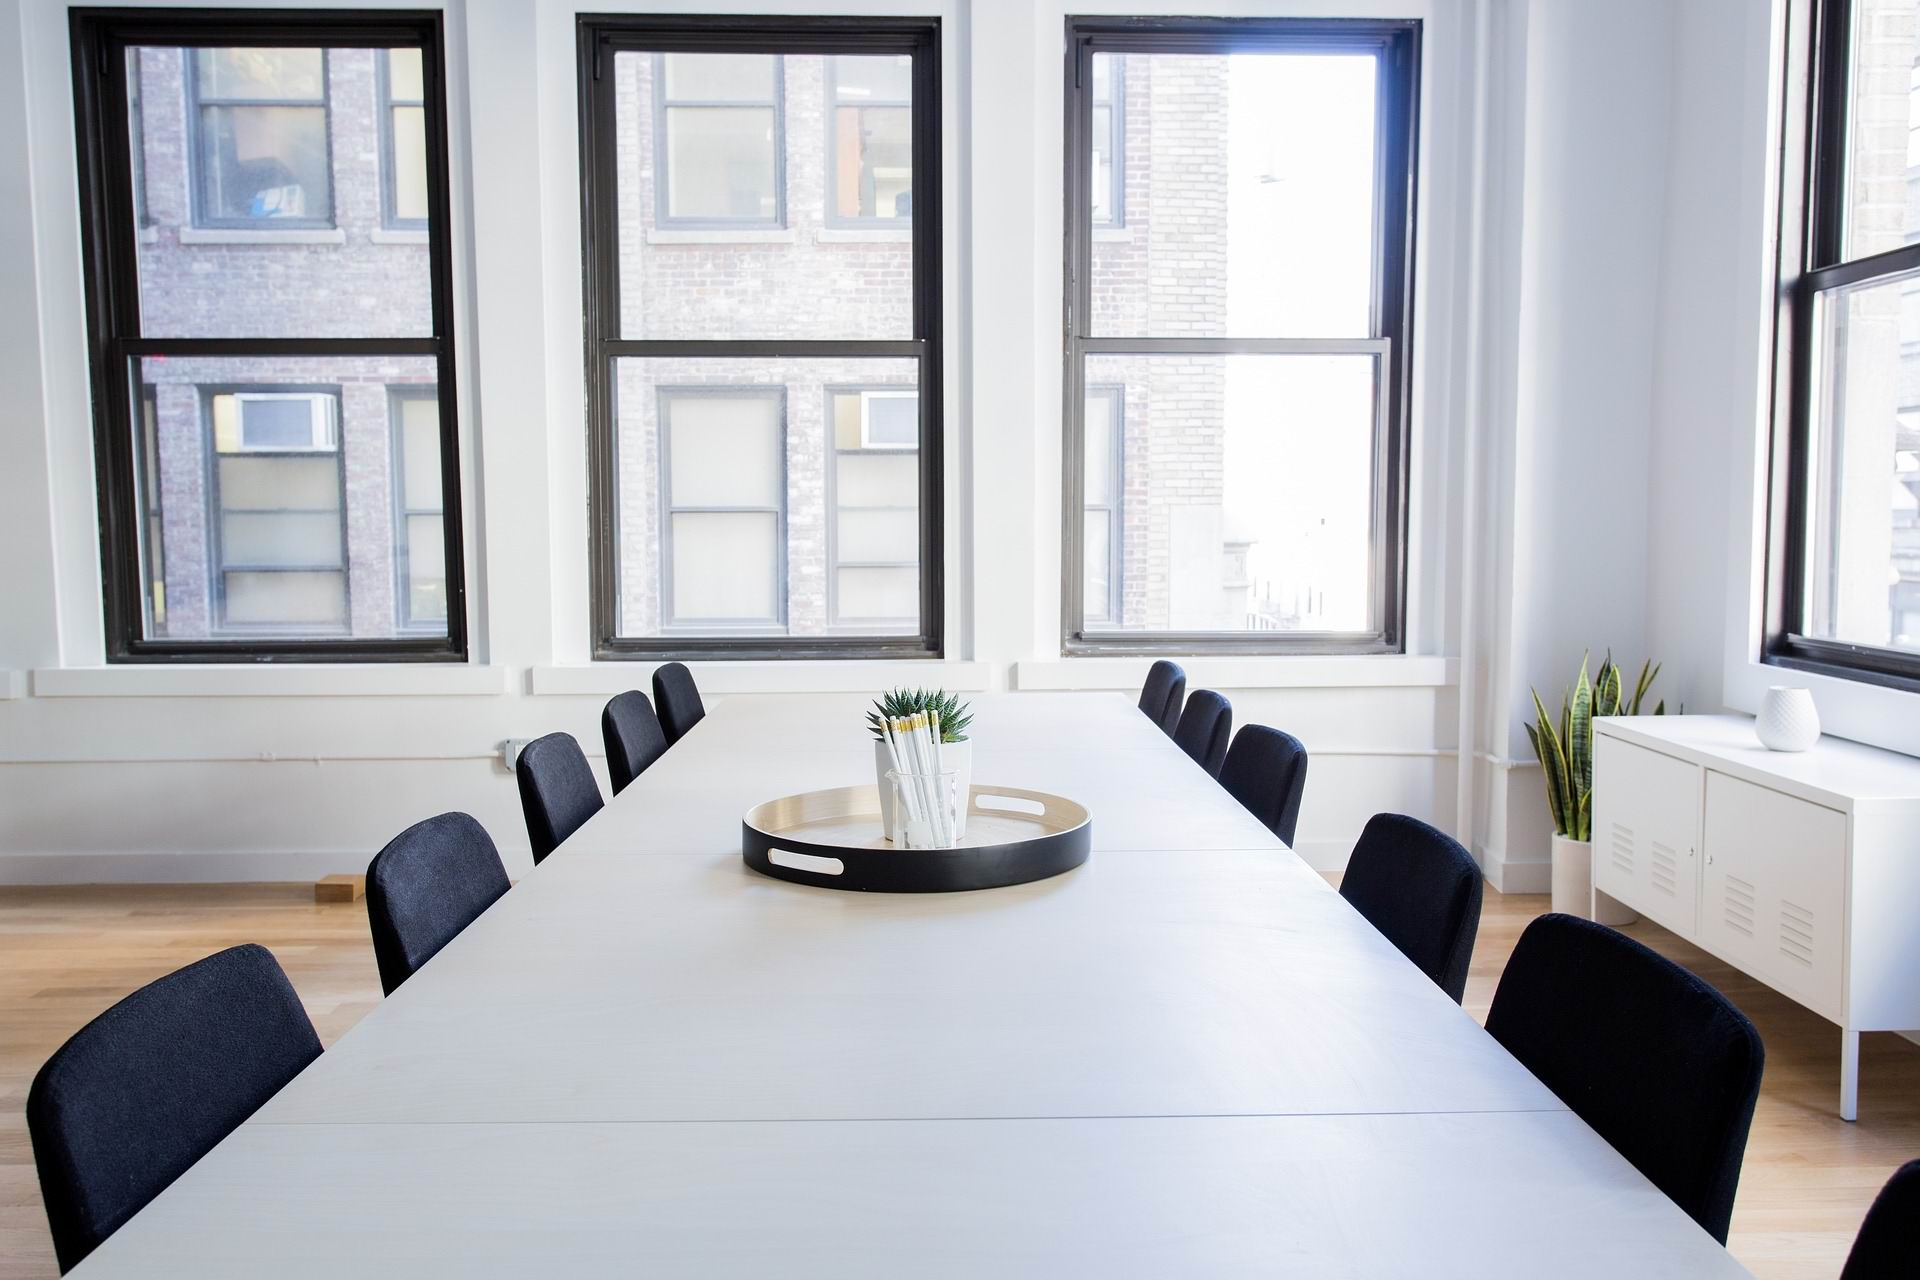 CONFERENCE TABLE AND CHAIRS -- Pexels -- PX